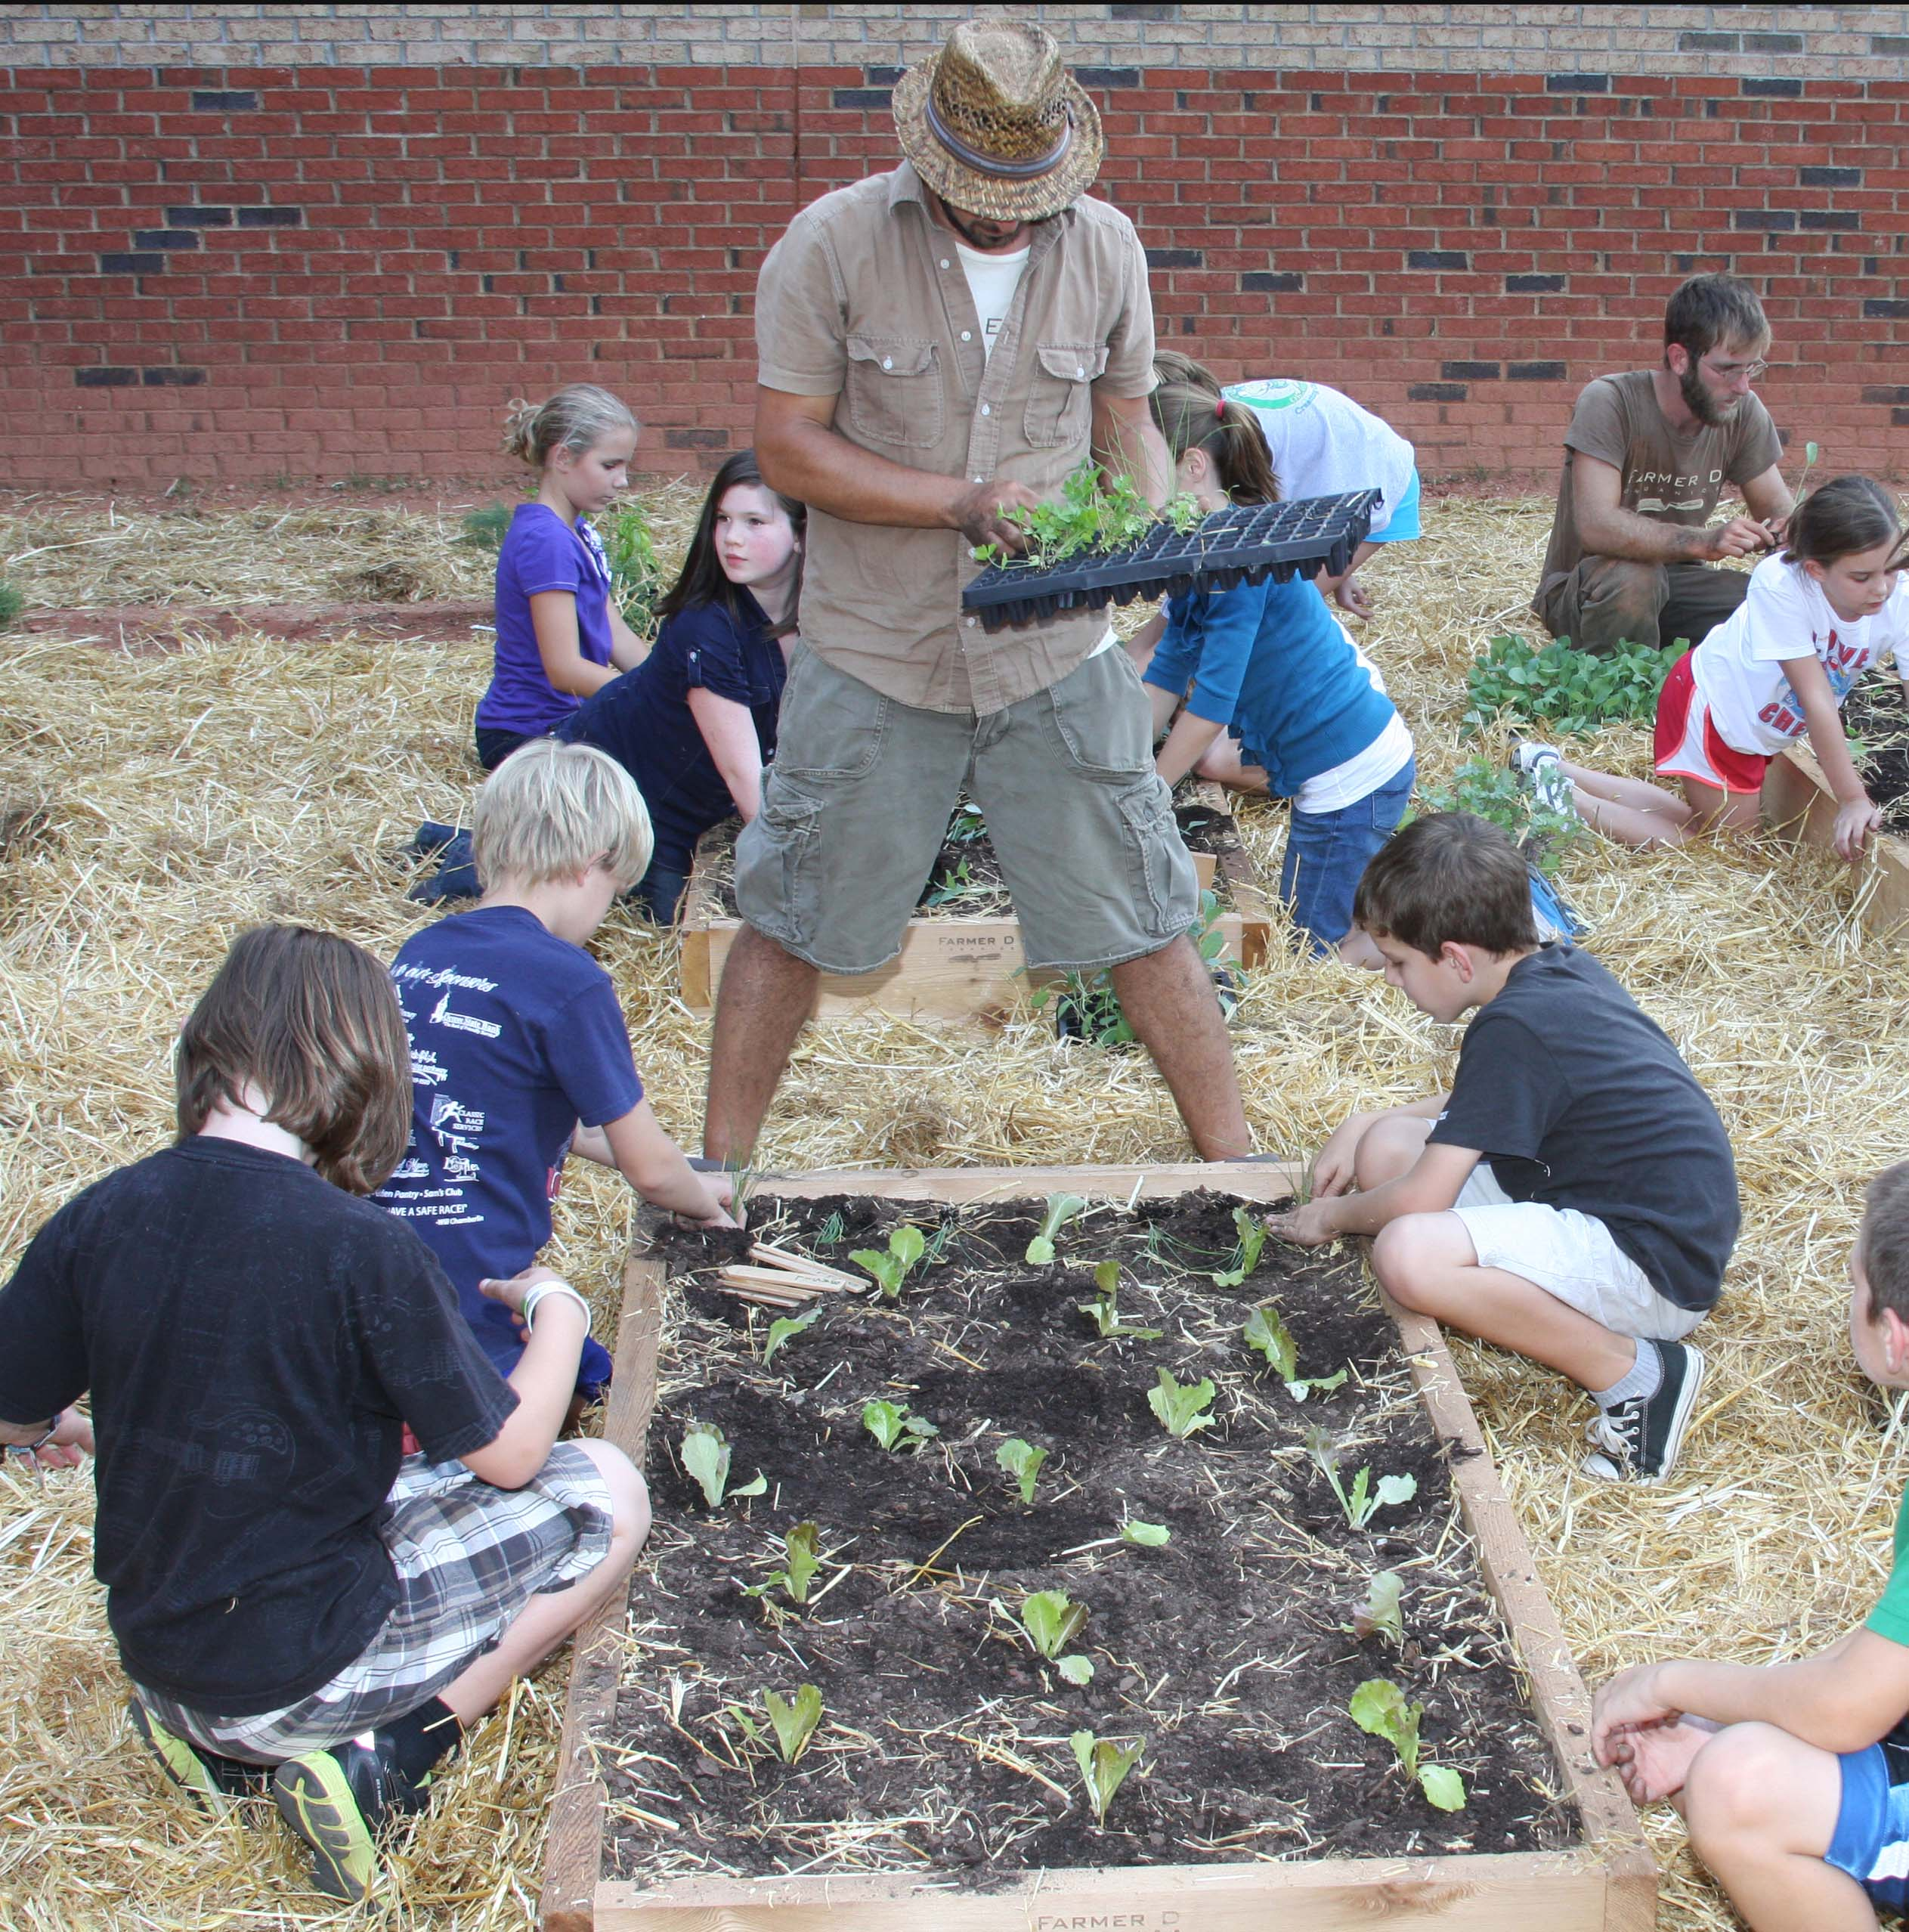 The University of Georgia College of Agricultural and Environmental Sciences has launched a new, online resource for Georgia teachers looking to take full advantage of their school's gardens or start a garden at their school.